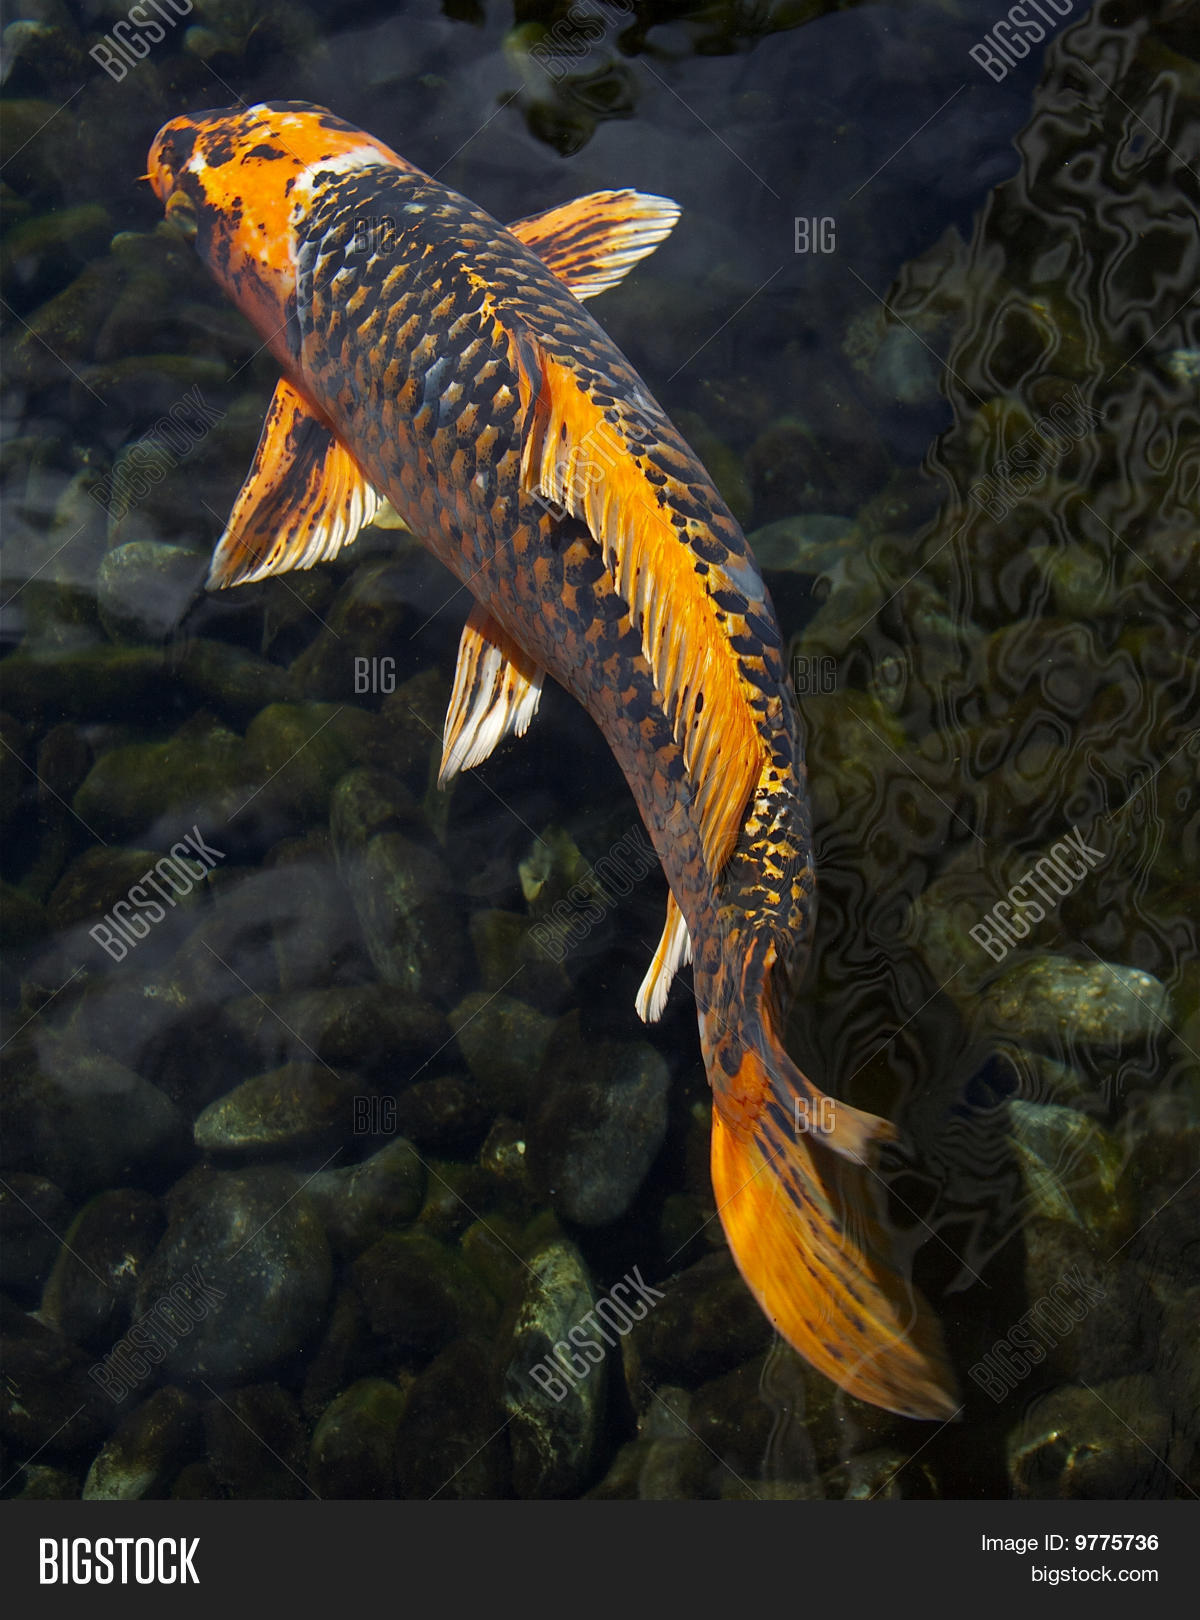 Large orange koi fish image photo bigstock for Large koi carp